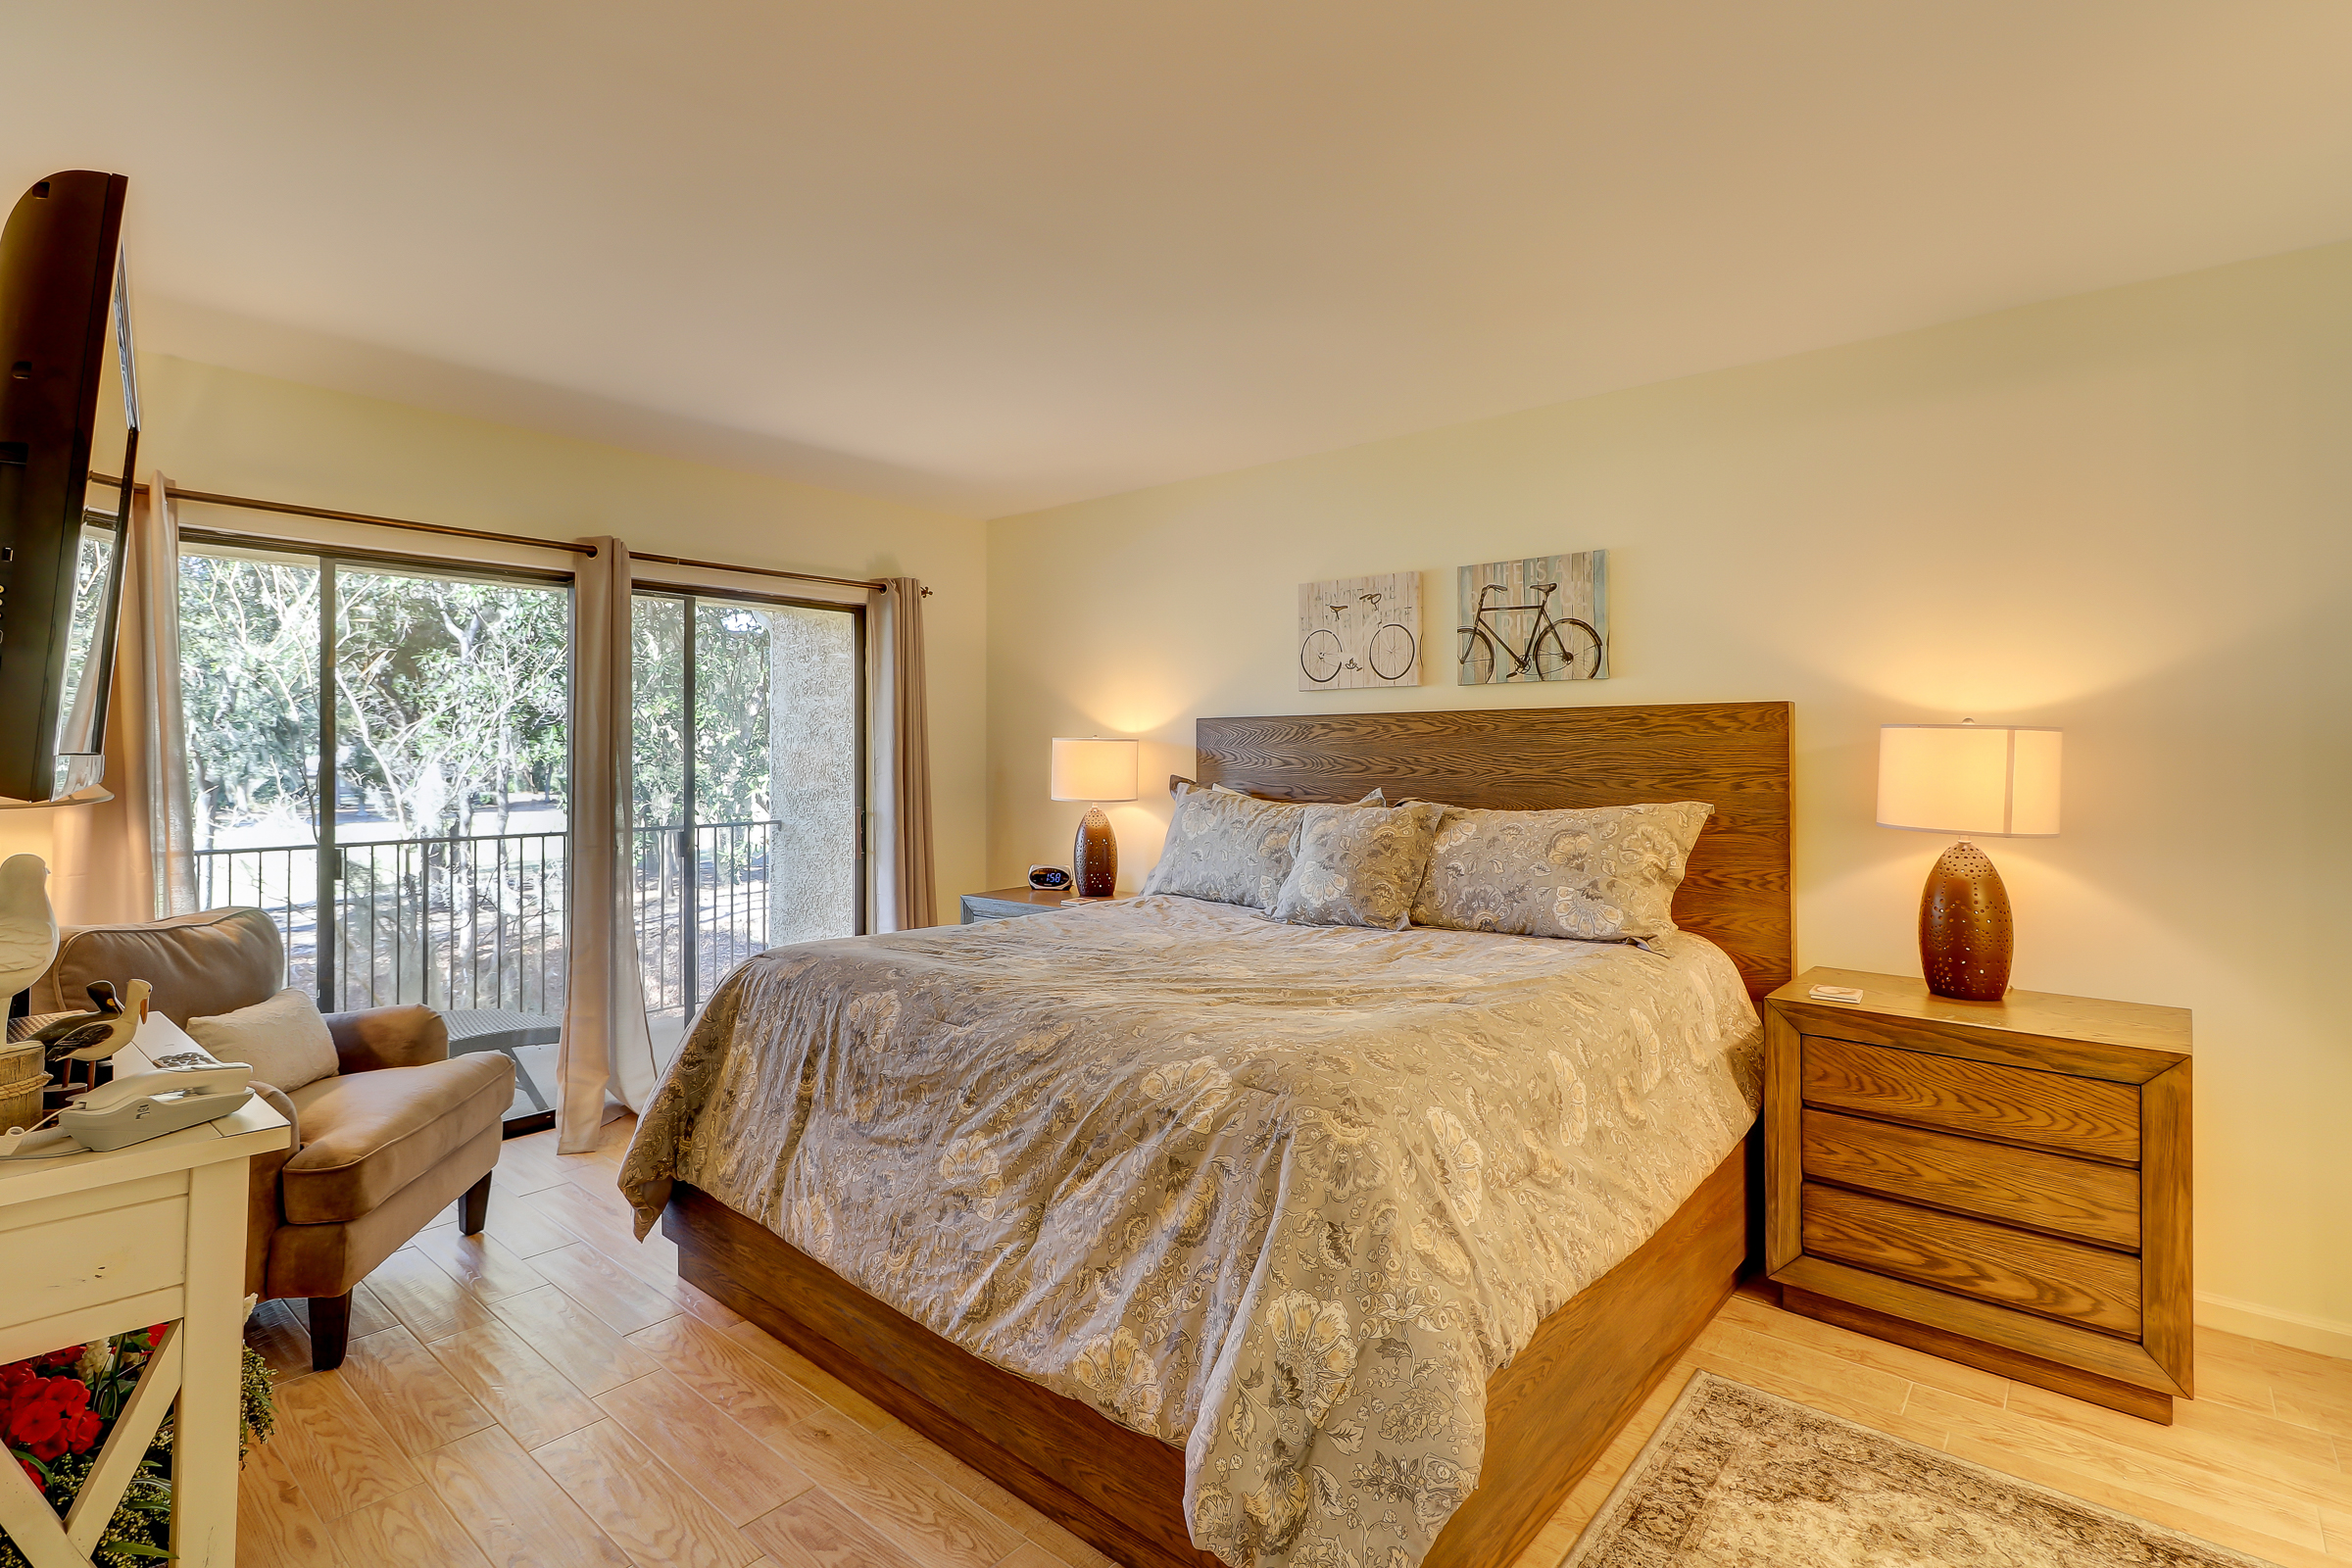 The master bedroom has a king bed, wall-mounted flat panel TV, access to the covered balcony and an en suite bath with tub/shower combo